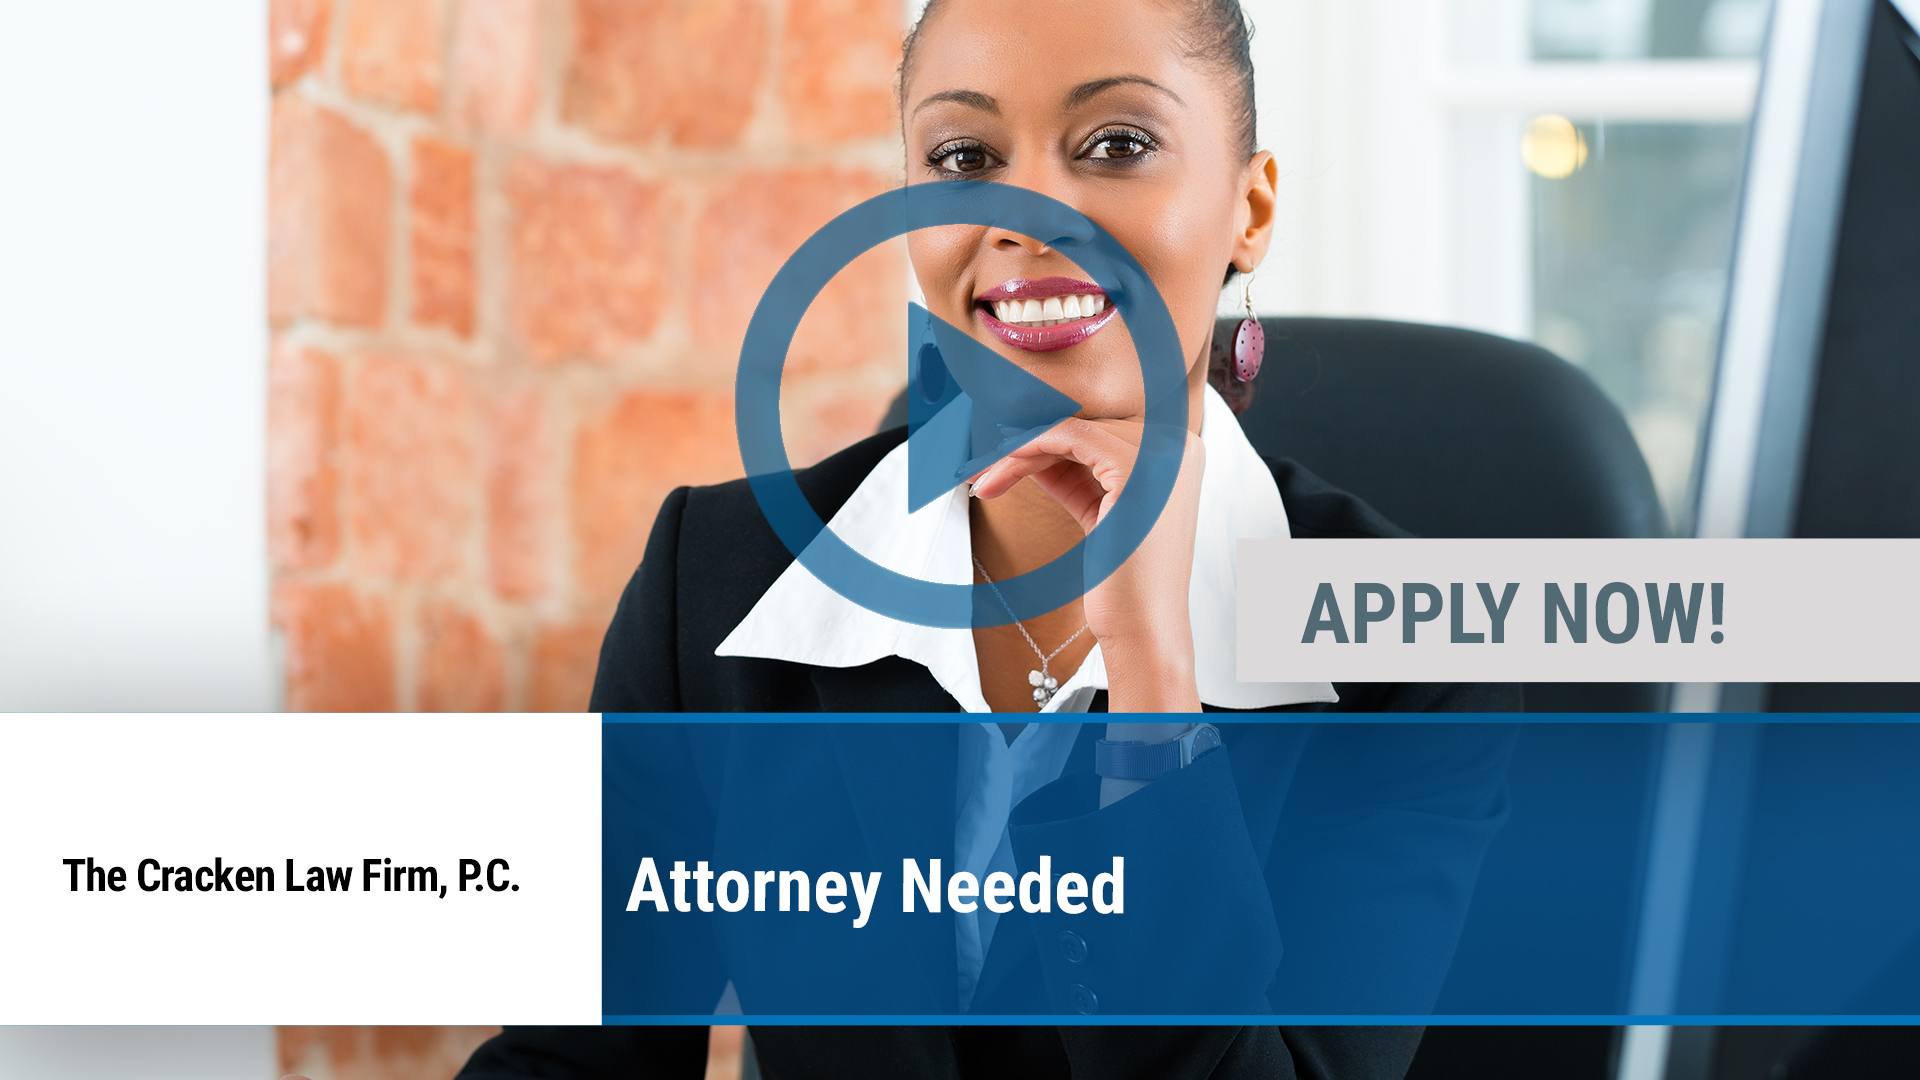 Watch our careers video for available job opening Attorney Needed in Dallas, TX